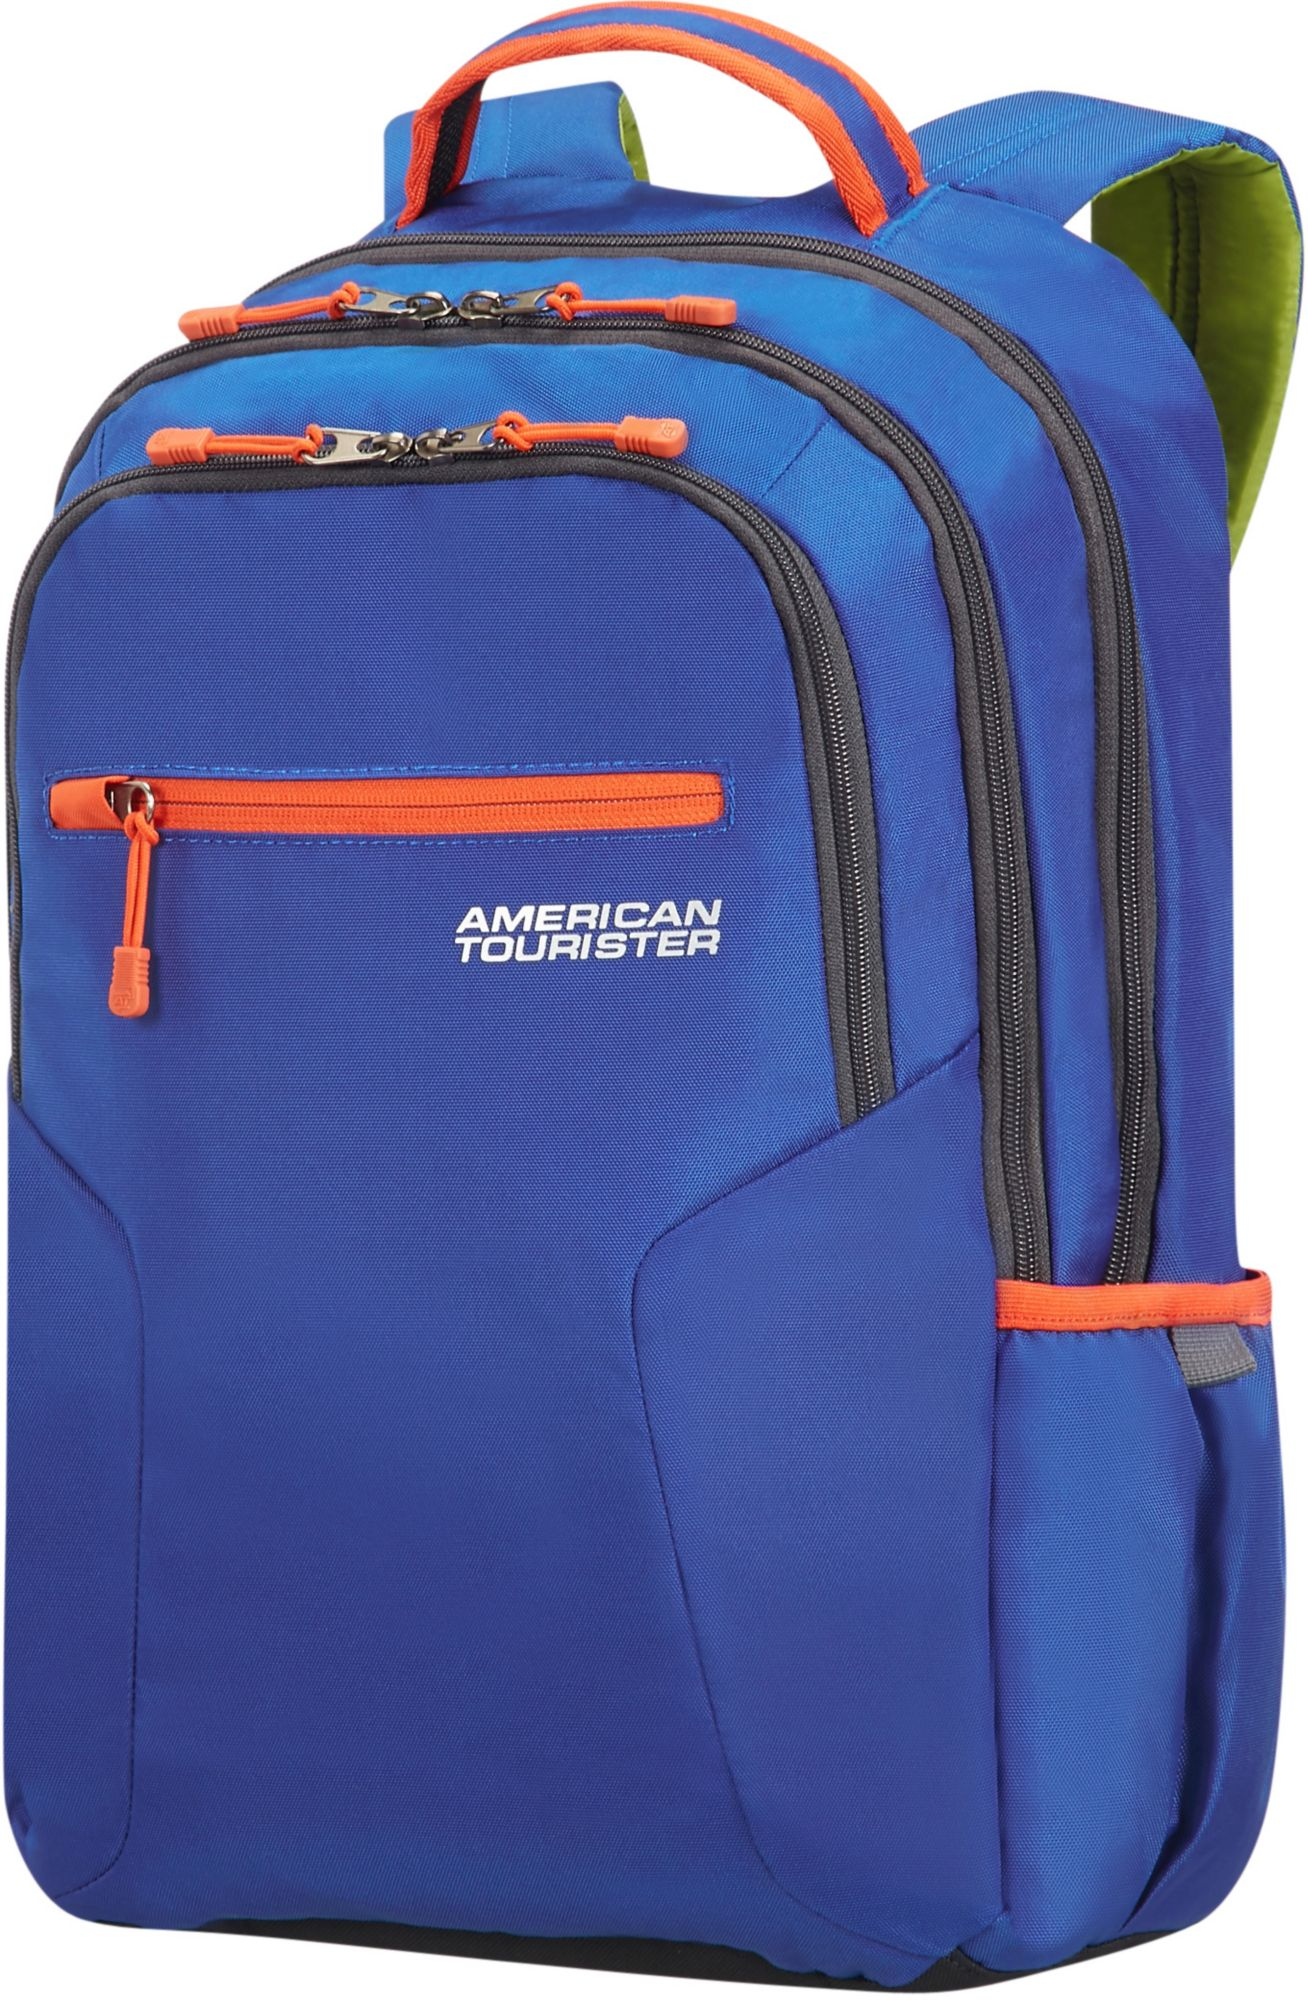 AMERICAN TOURISTER American Tourister Laptopbackpack, »Urban Groove UG6«